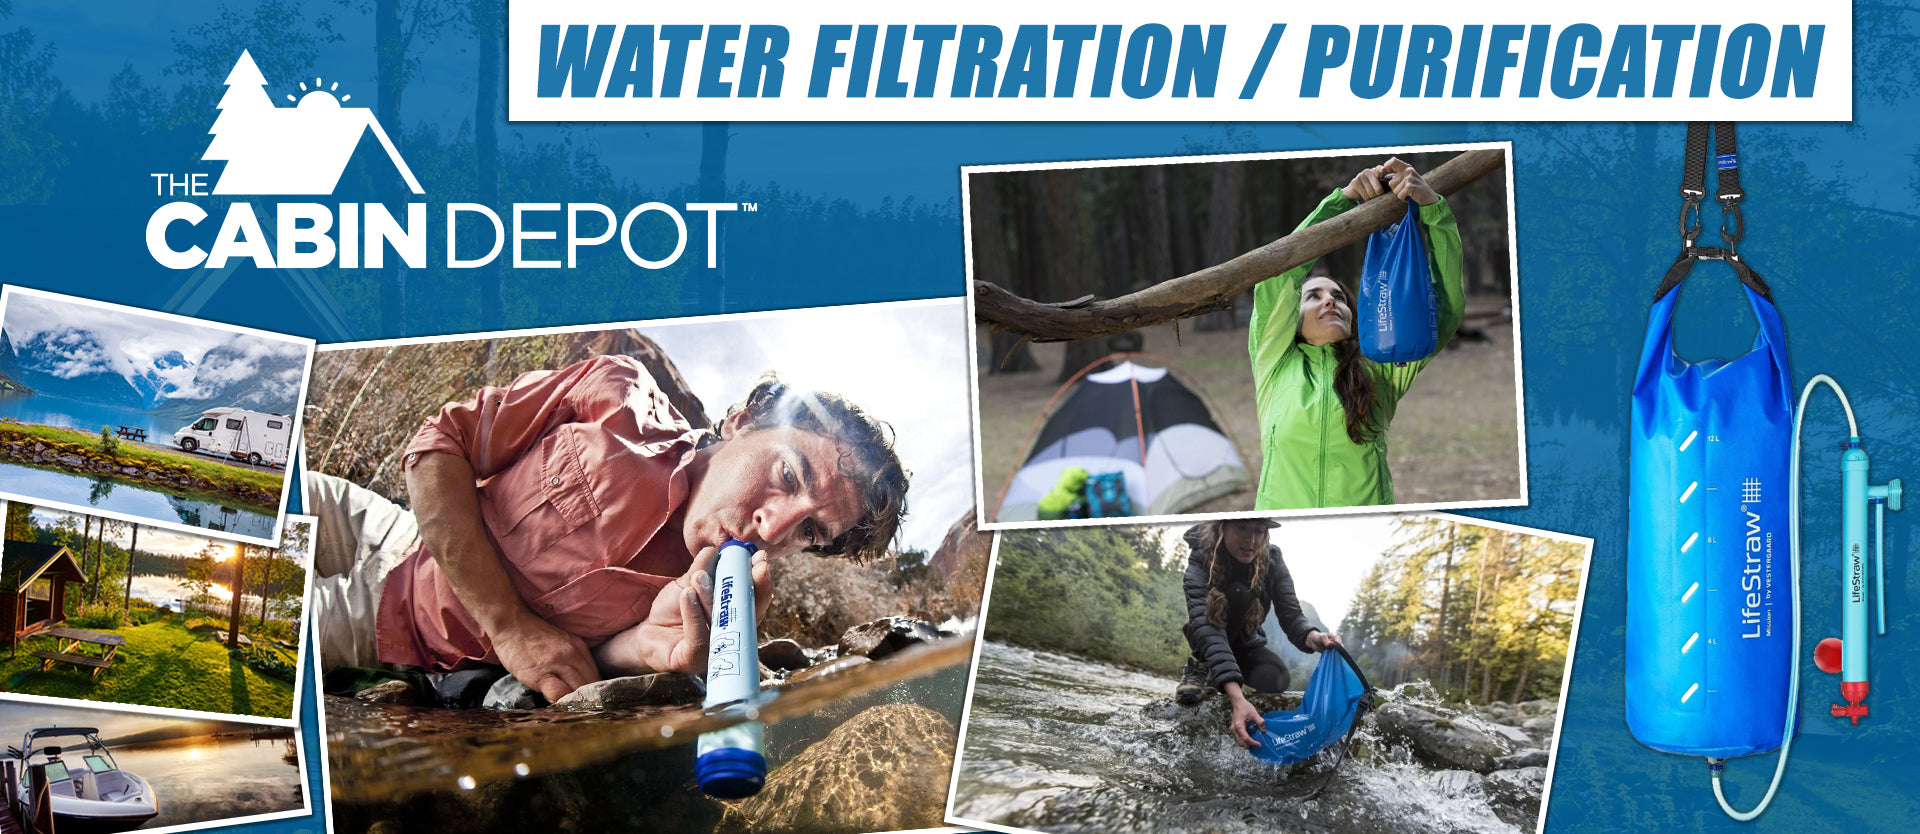 Water Filtration Purification The Cabin Depot ™ Canada